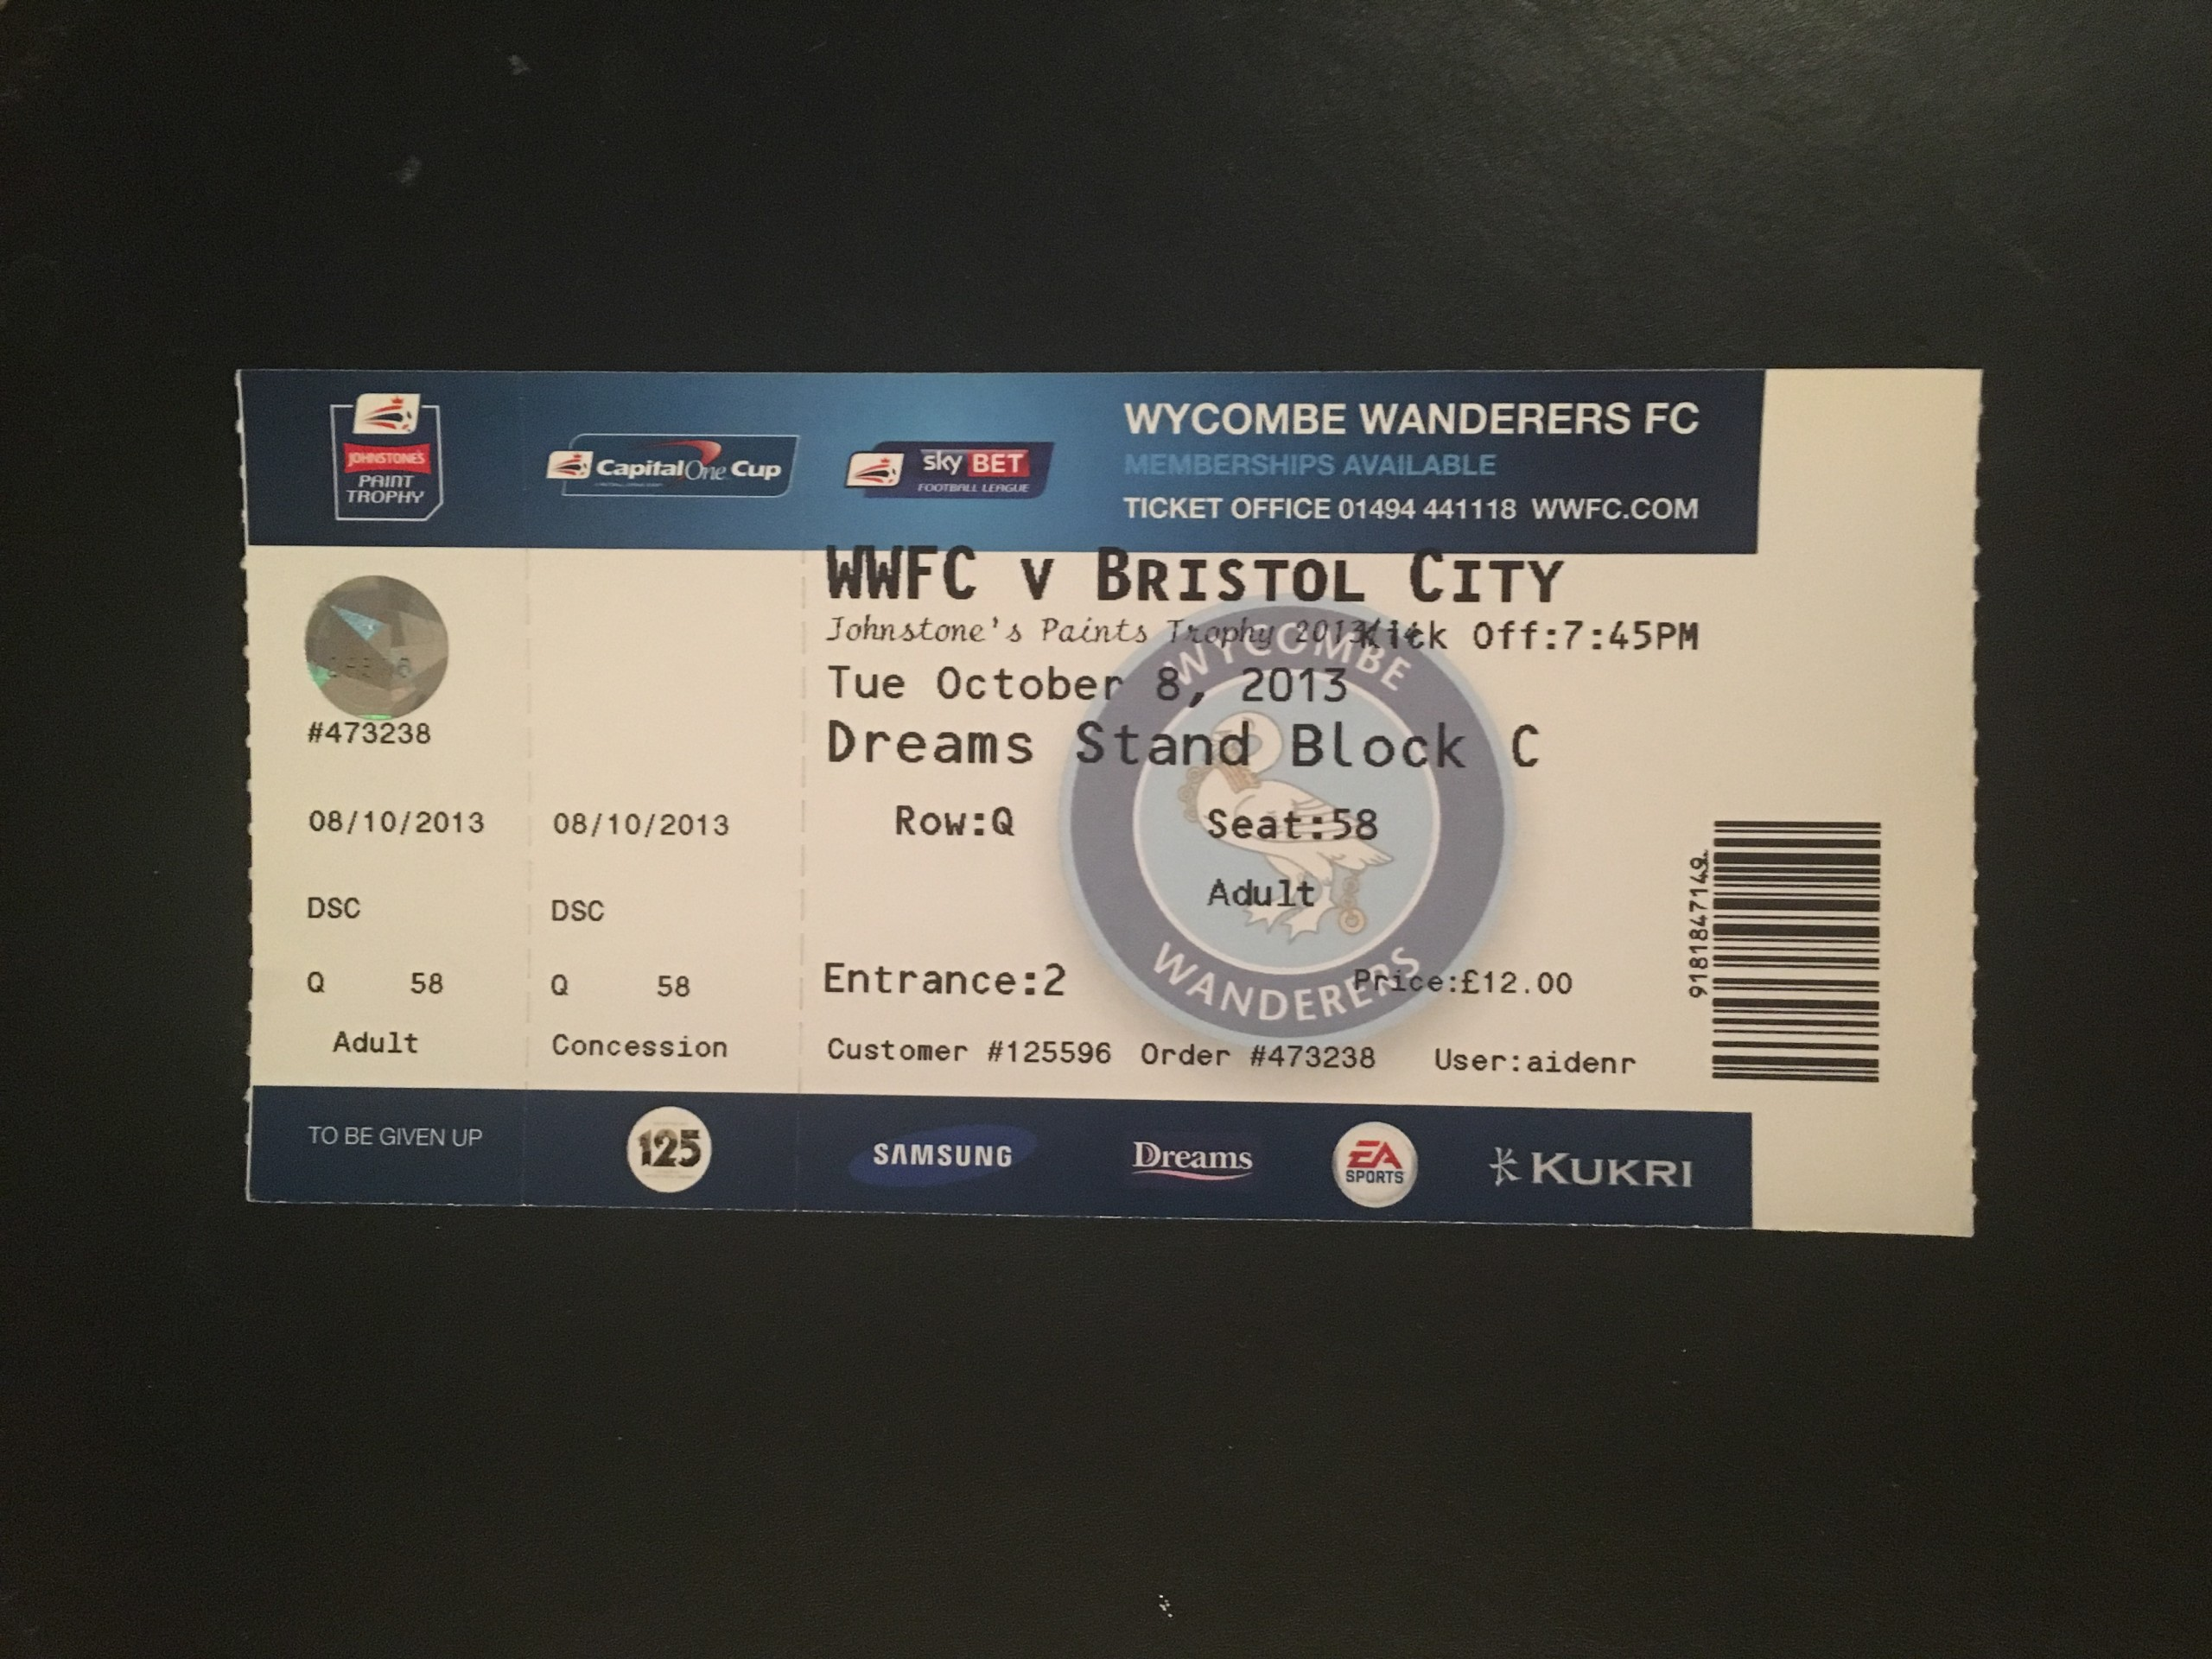 Wycombe Wanderers v Bristol City 08-10-2013 Ticket